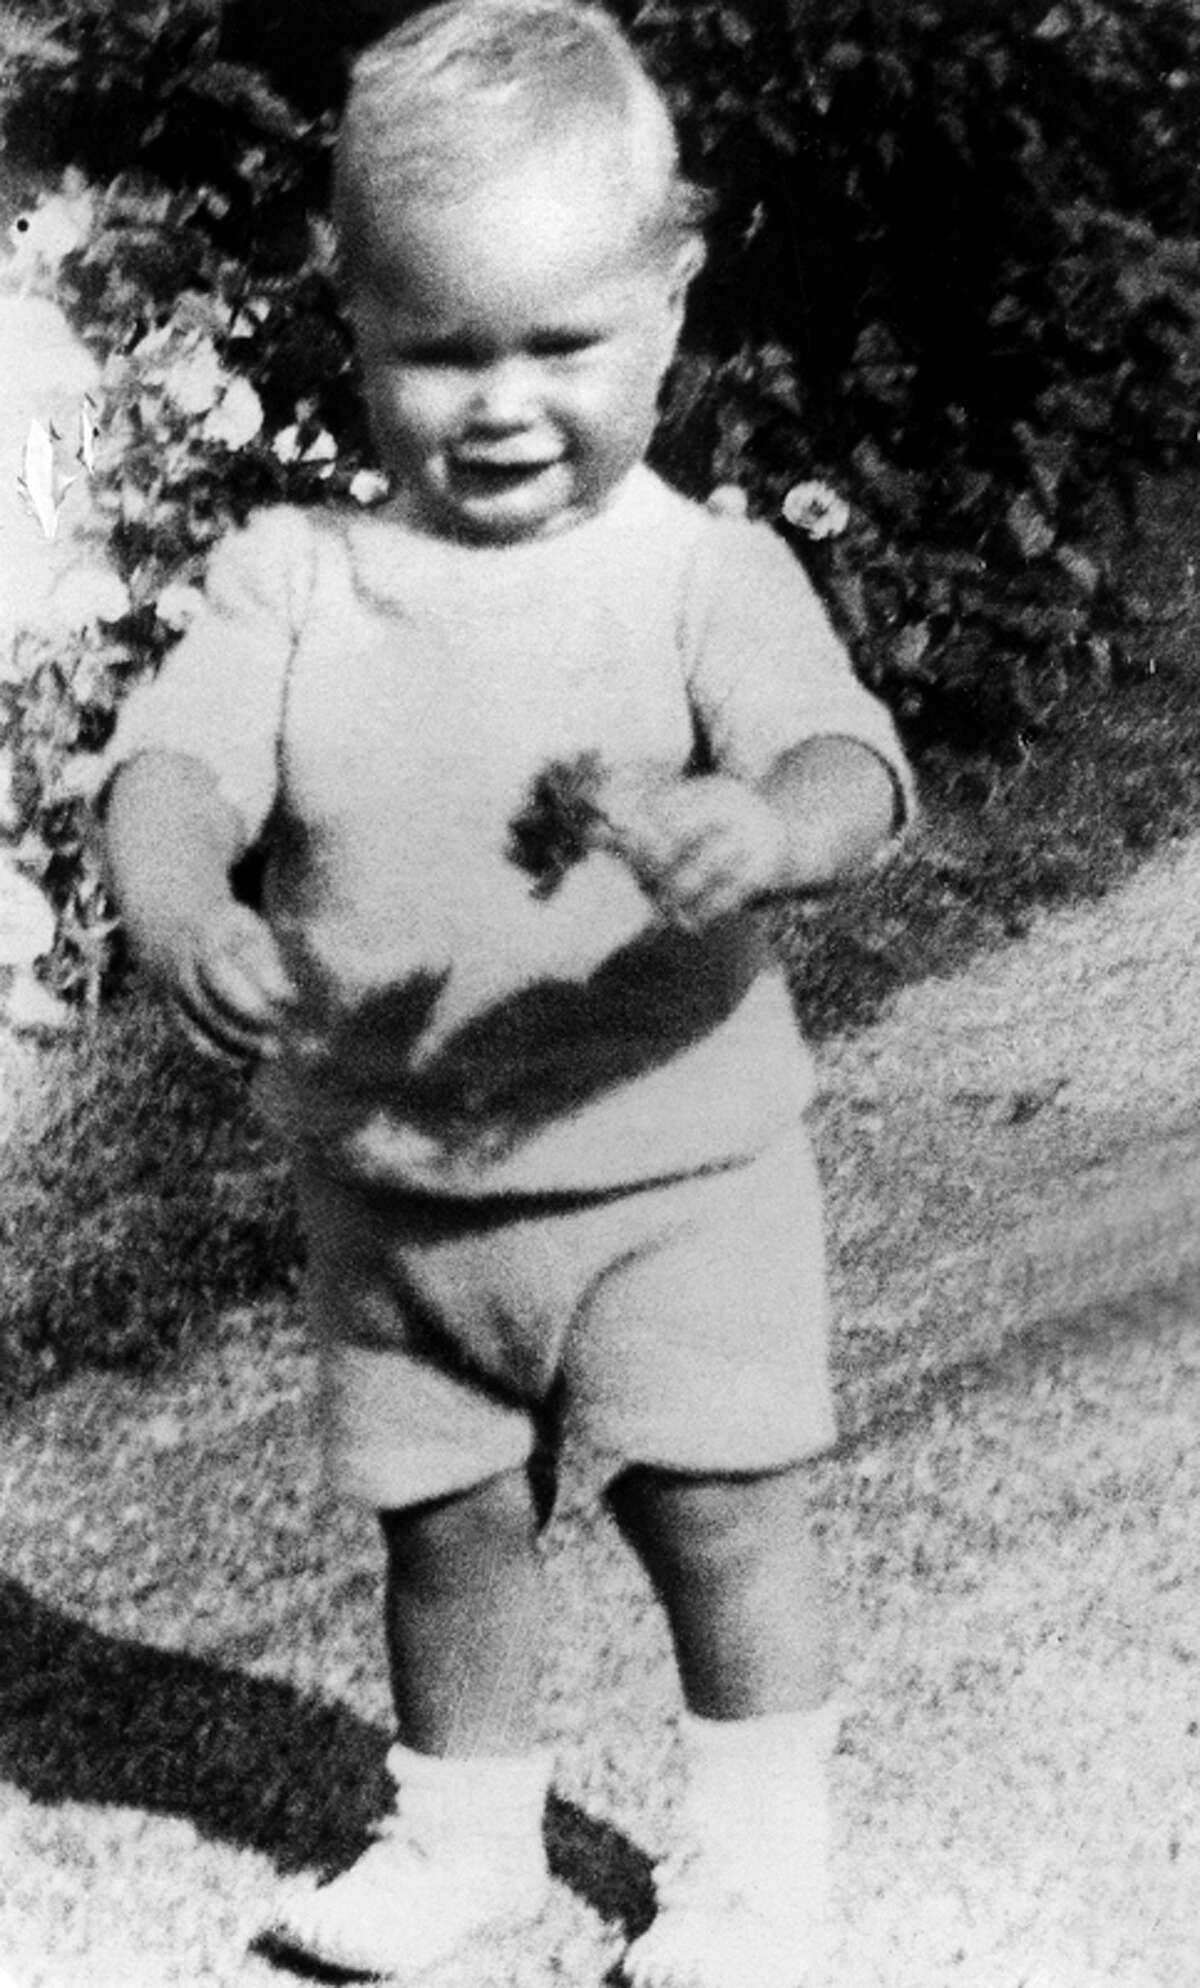 George H.W. Bush is pictured when he was one and a half year old. Born 12 June 1924 in Milton, Massachusetts, George Bush Yale graduated with a degree in Economics in 1948, made a fortune drilling oil before entering politics in 1964.